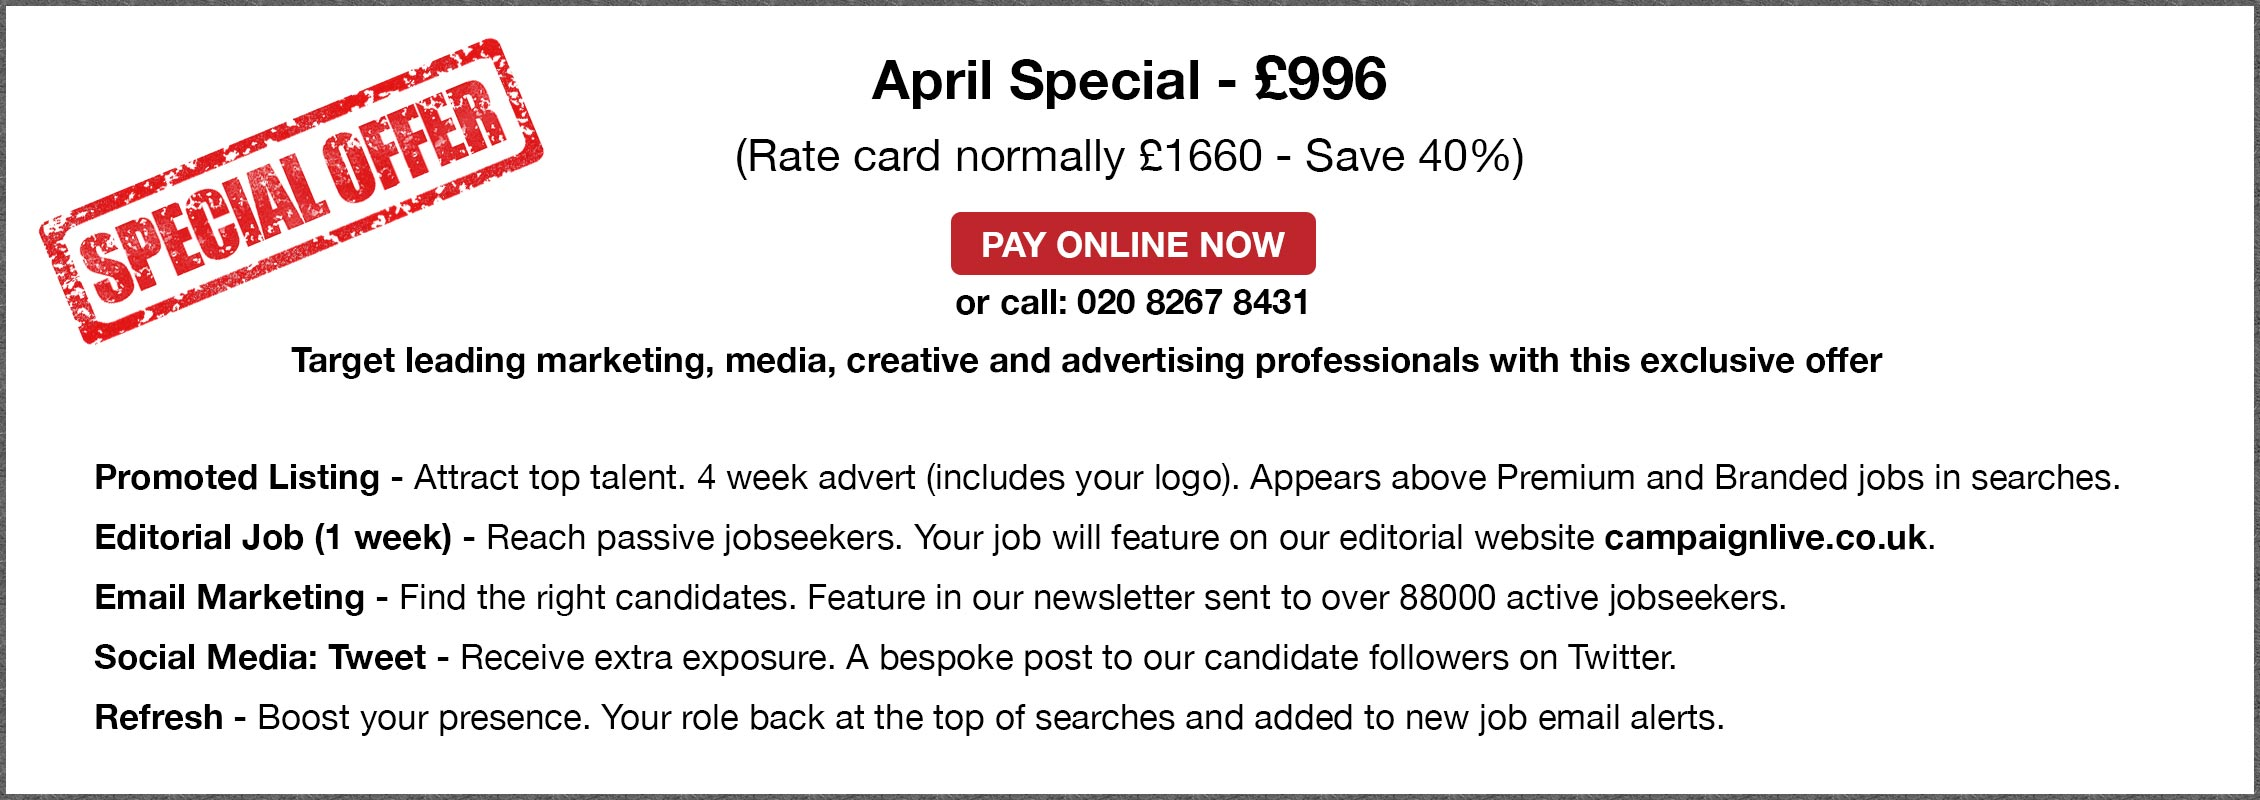 Special Offer. April Special - £996.